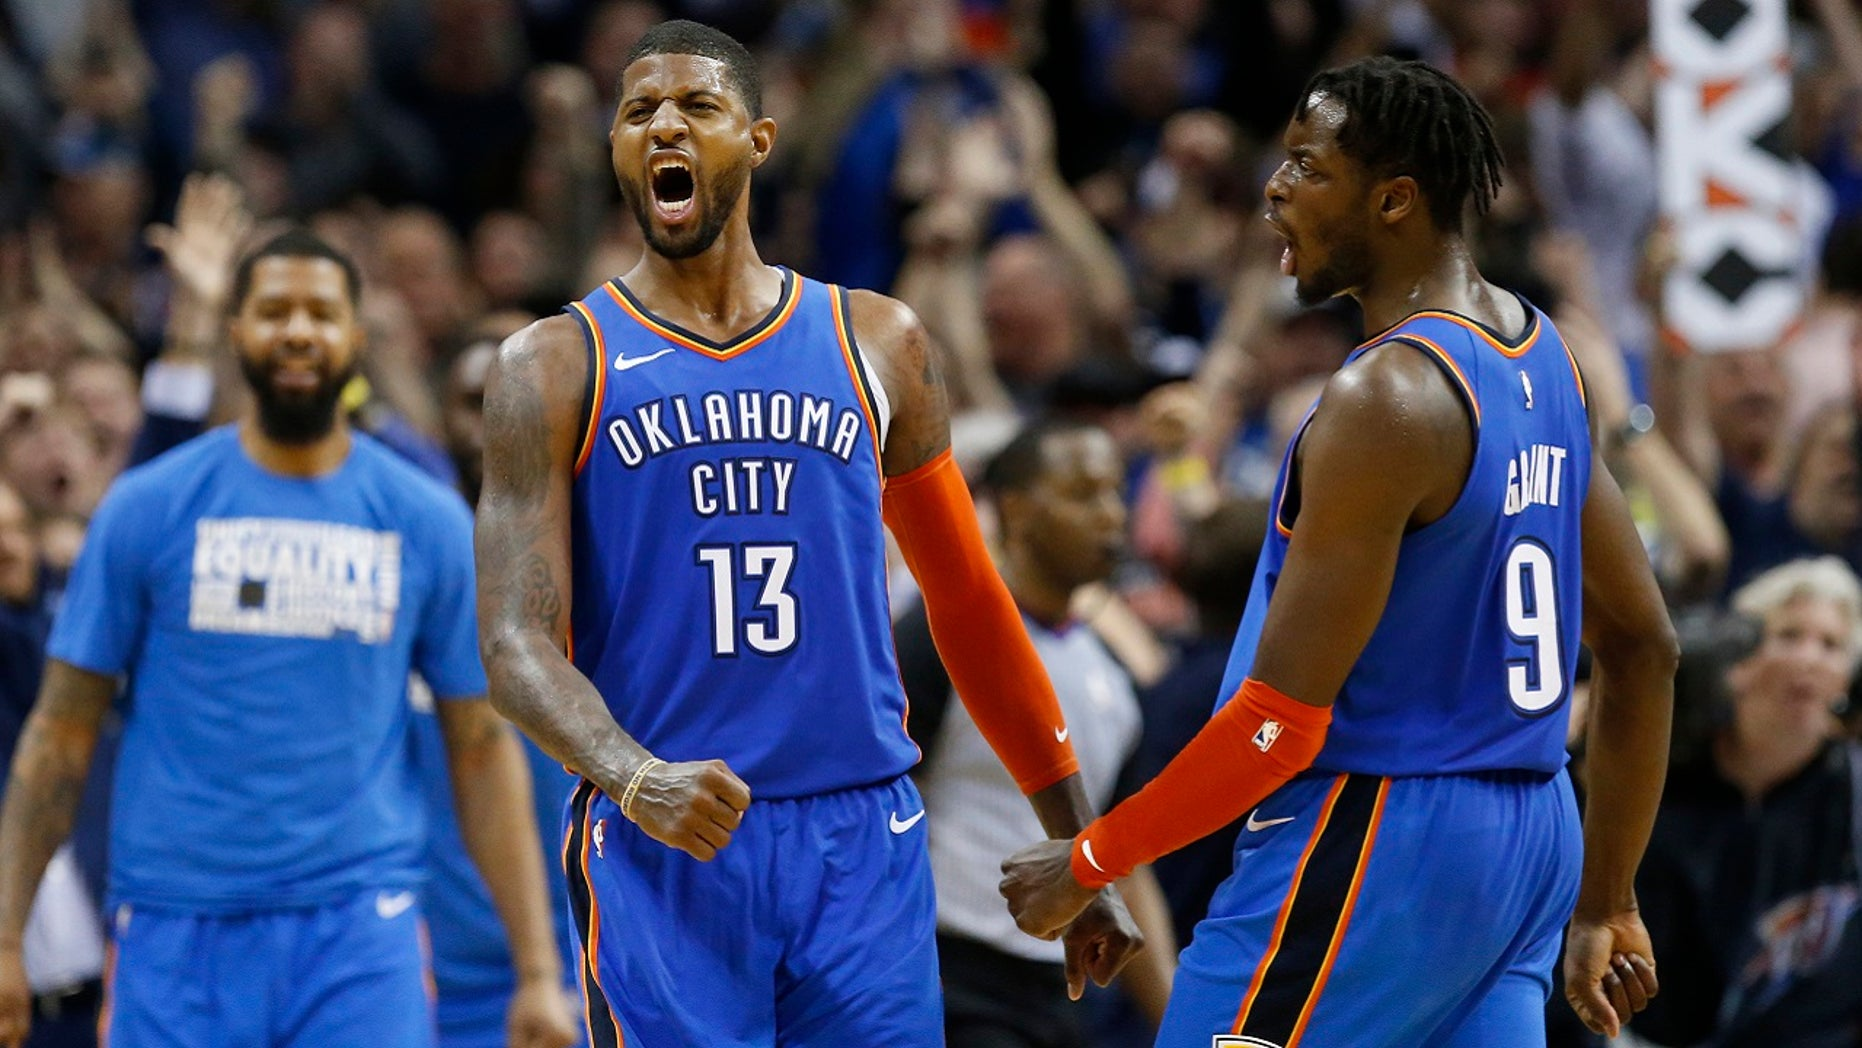 Oklahoma City Thunder forwards Paul George (13) and Jerami Grant (9) celebrate after George hit a shot with less than a second left in the second overtime of an NBA basketball game against the Utah Jazz in Oklahoma City, Friday, Feb. 22, 2019. The Thunder won 148-147.